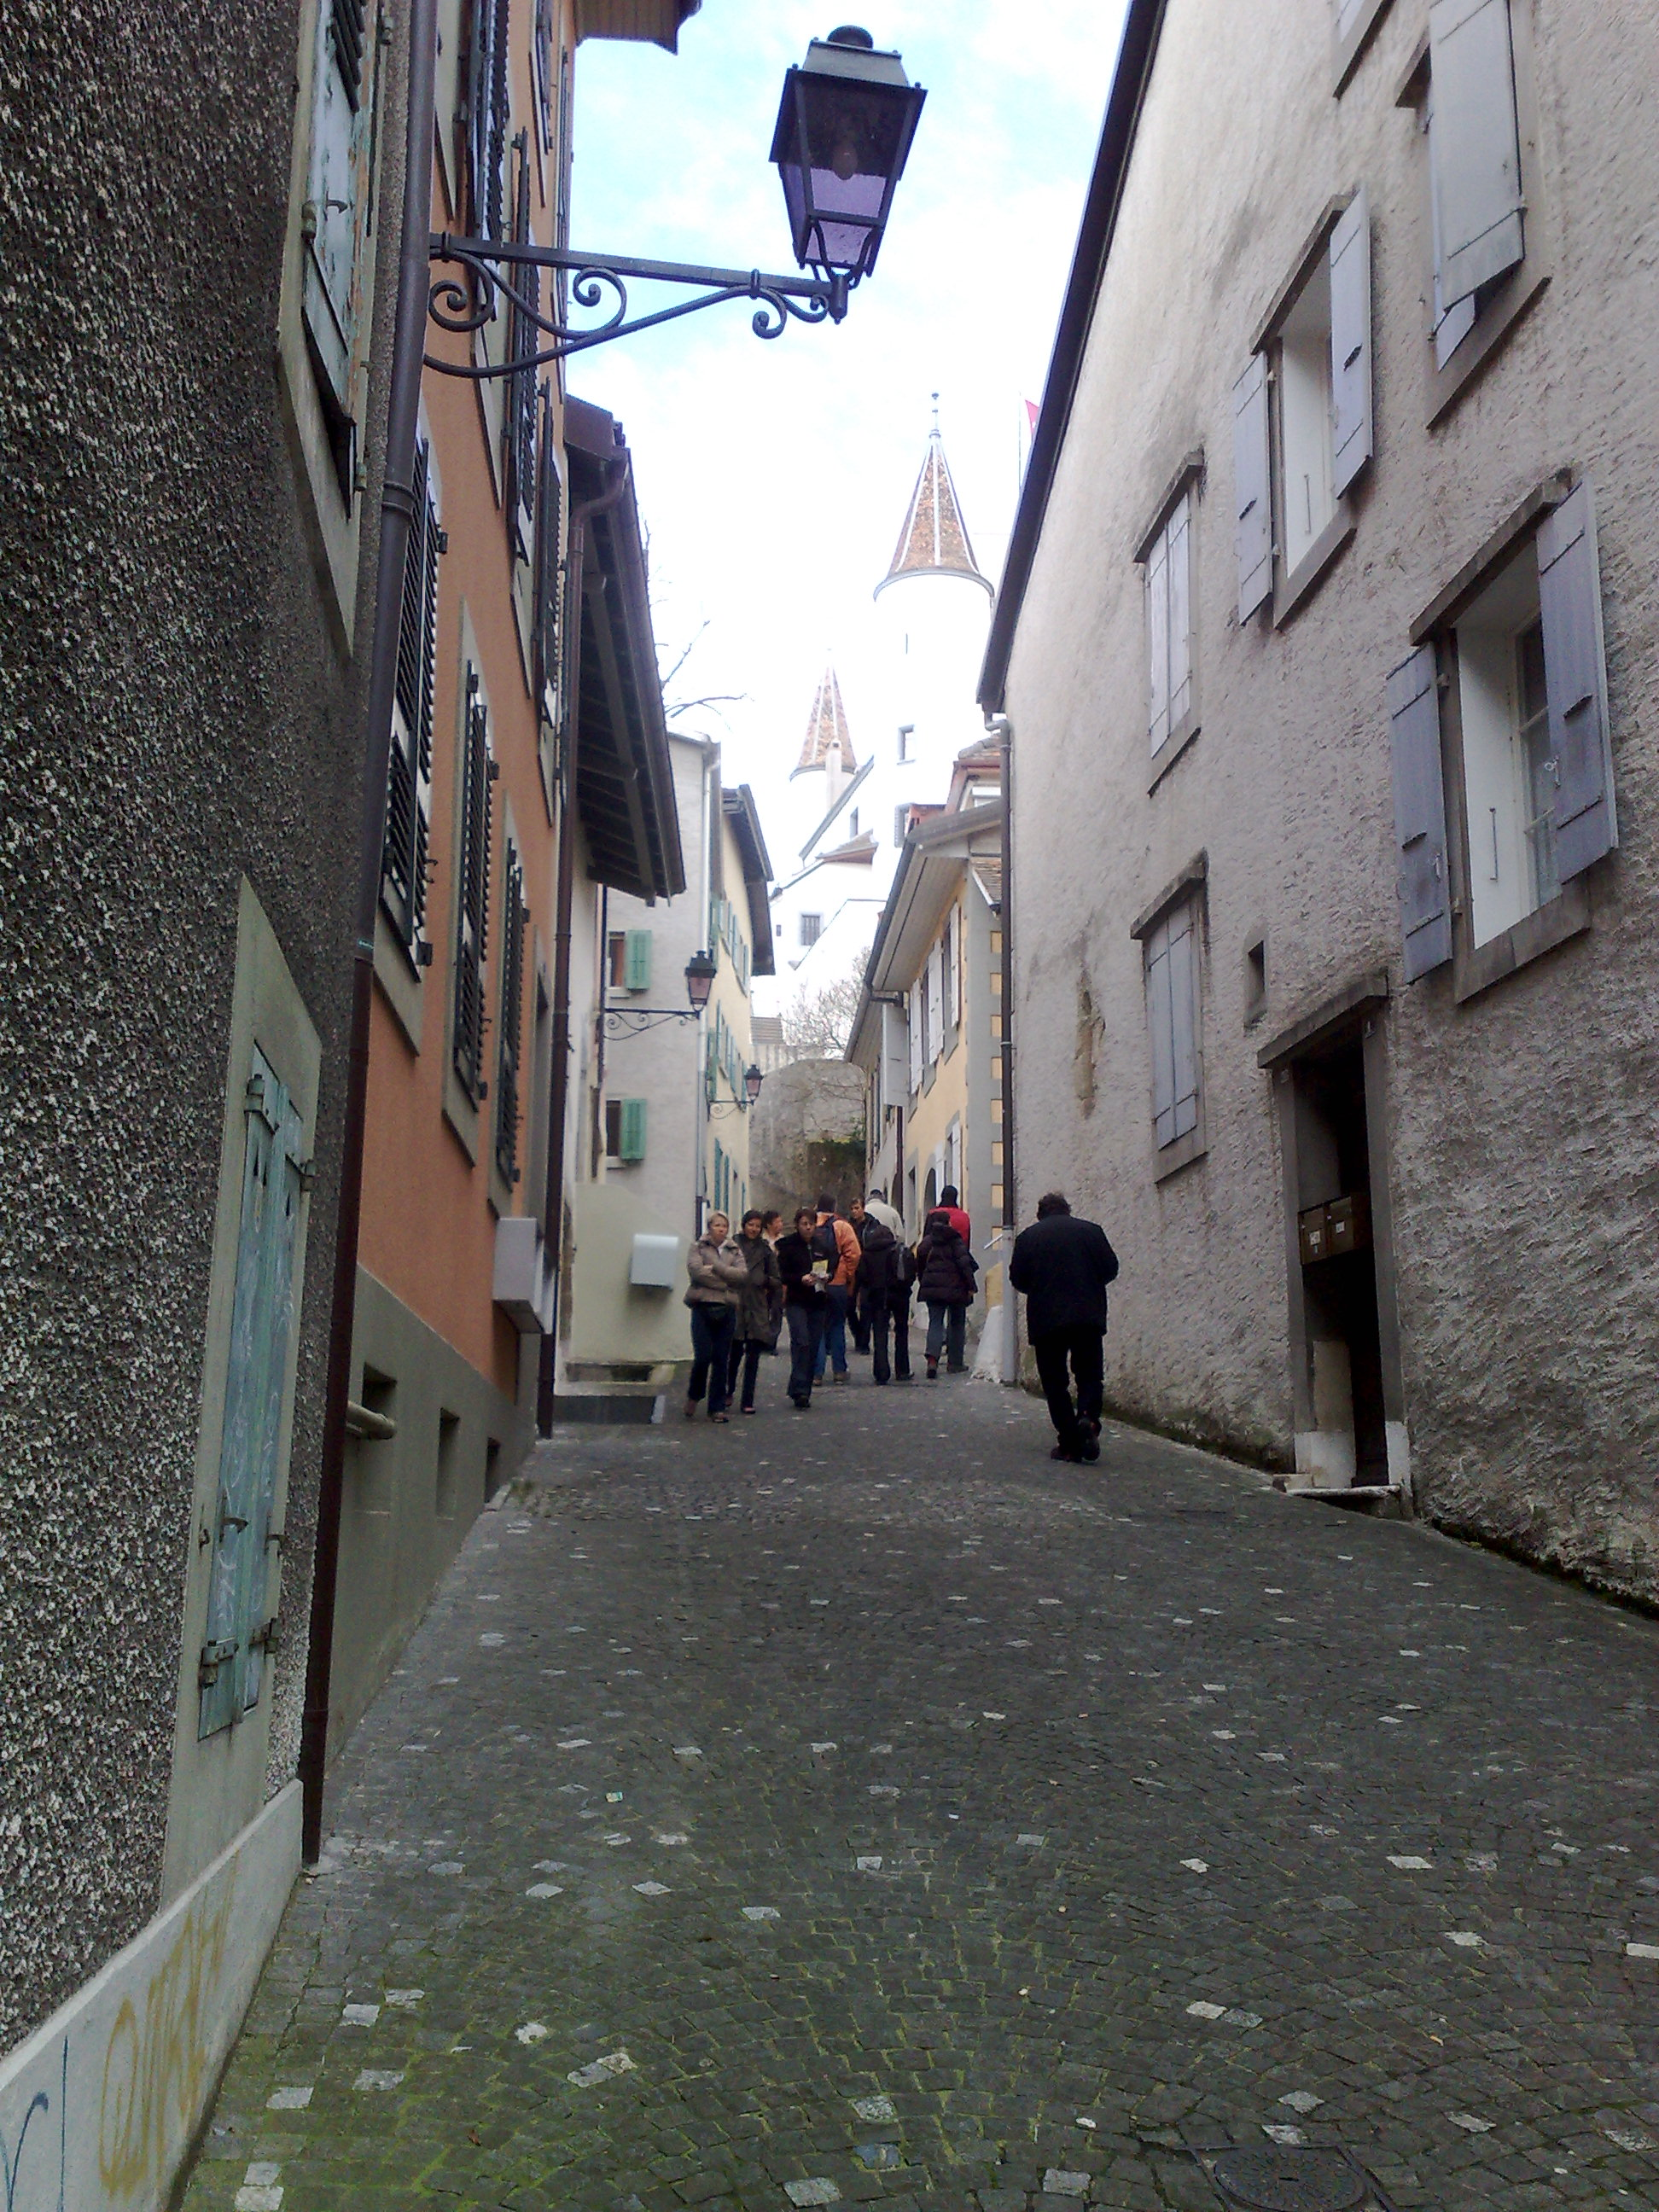 Https Commons Wikimedia Org Wiki File Nyon Narrow Street Jpg